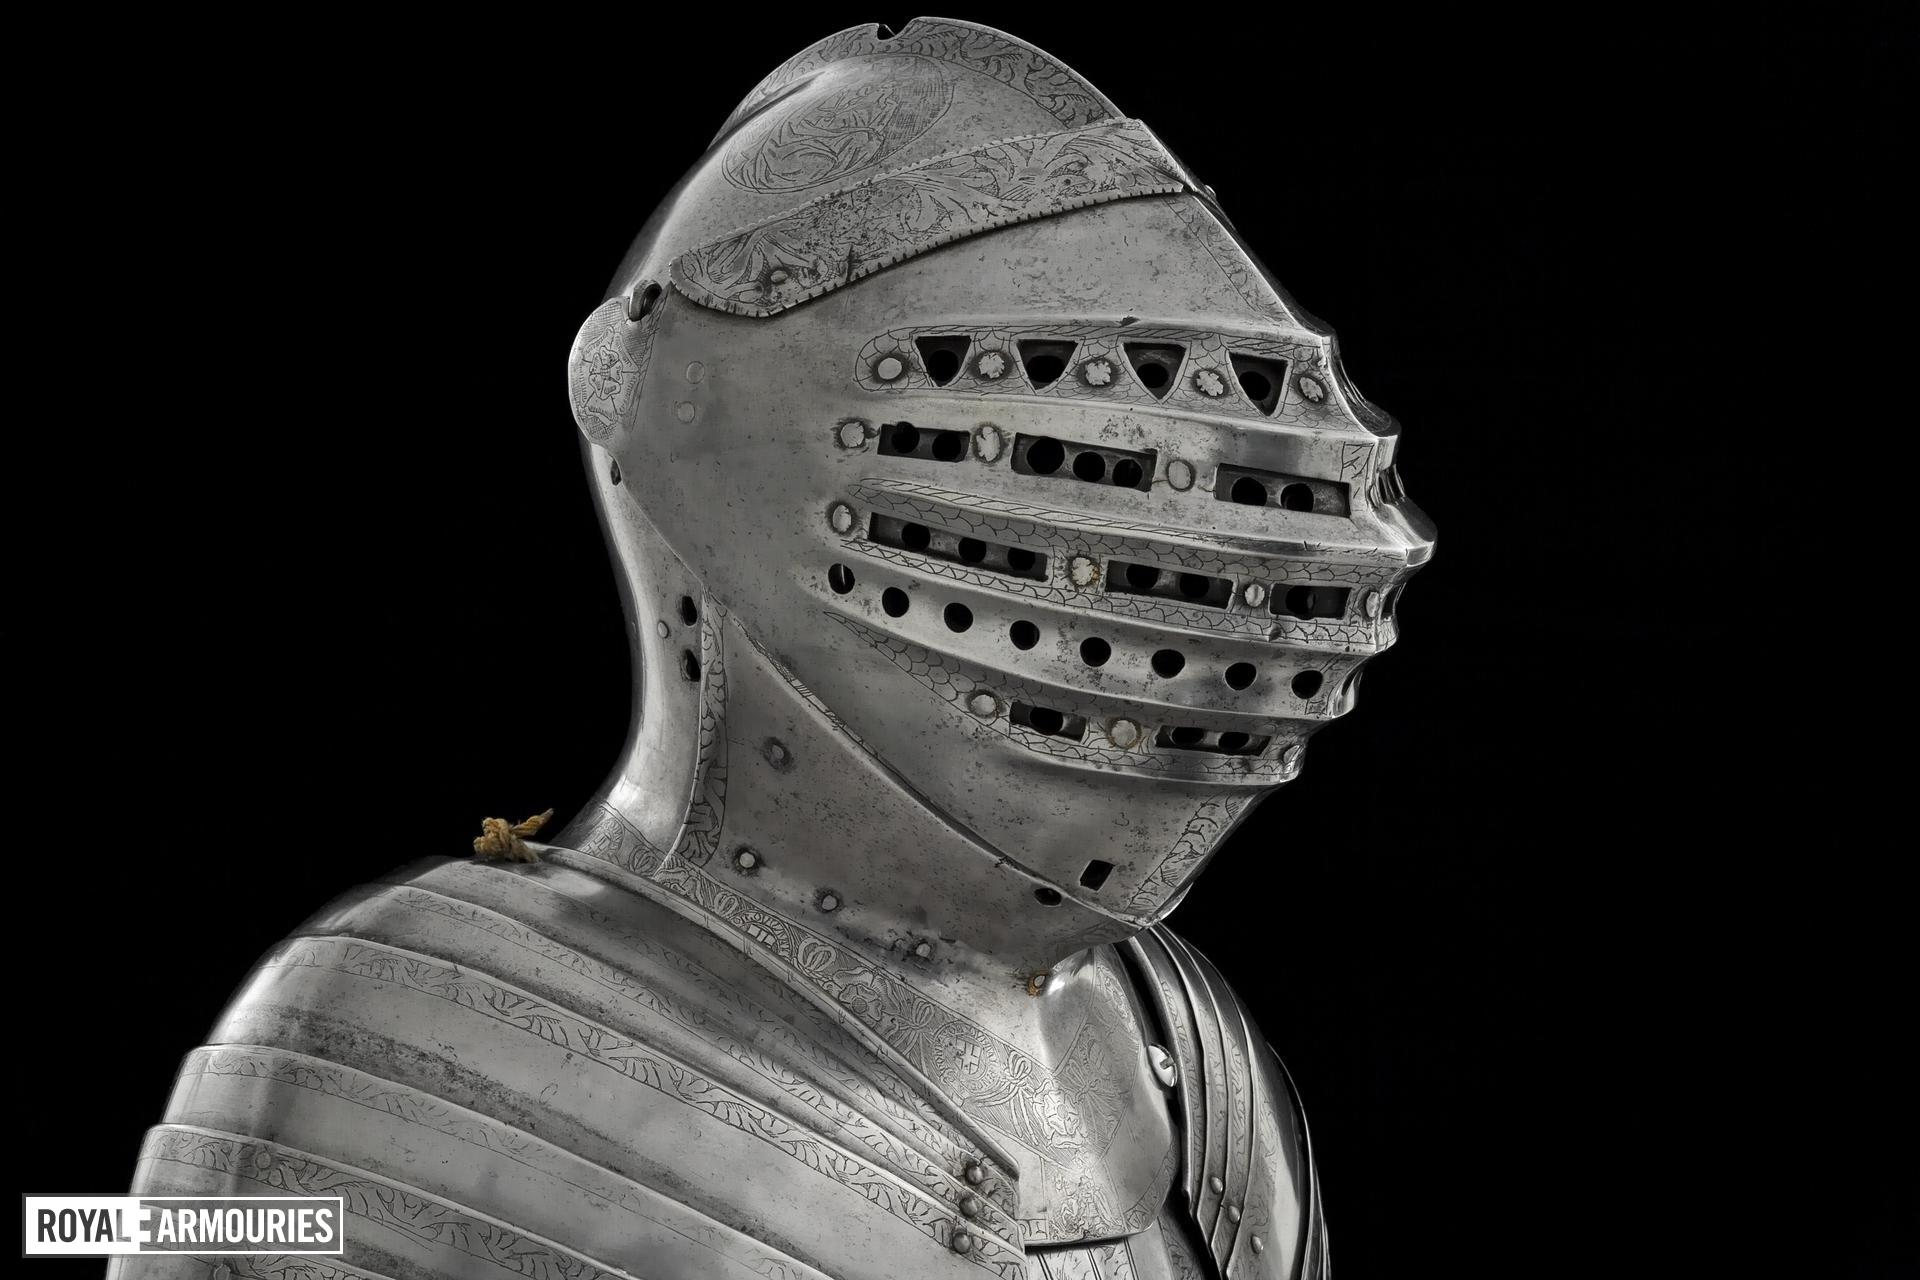 Great Bacinet - Great Bacinet The Tonlet armour of Henry VIII, modified from a Milanese bacinet of about 1500.